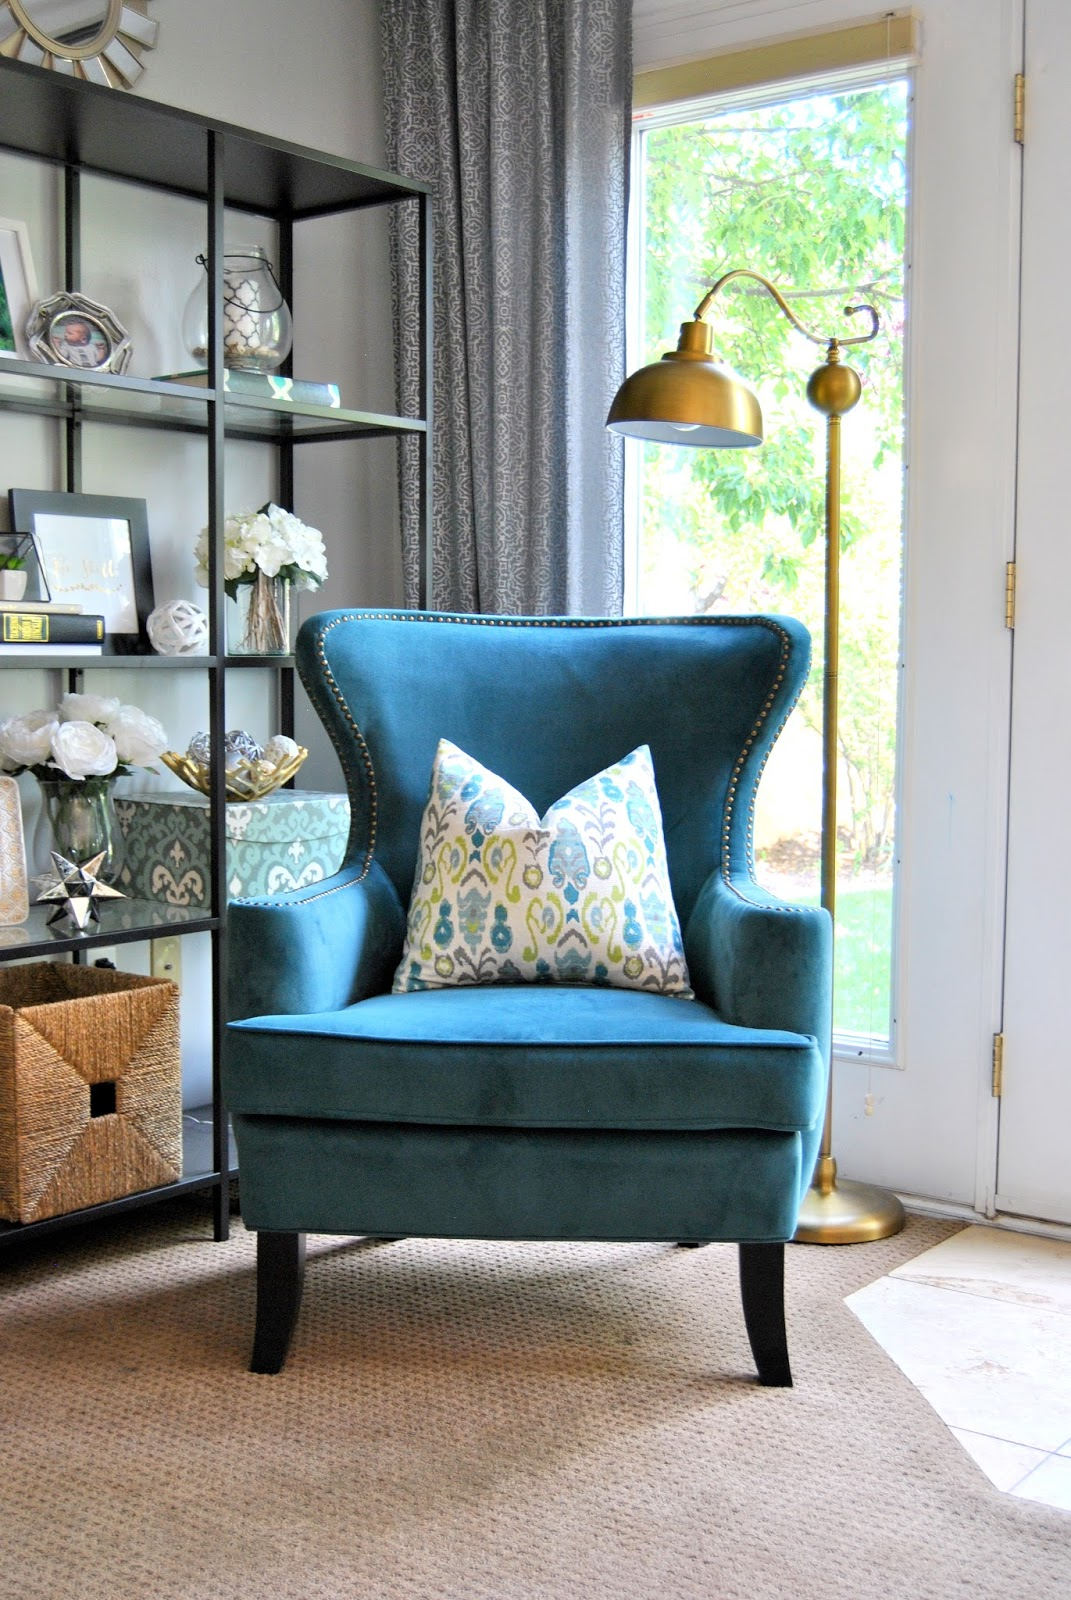 Studio 7 interior design the friday five club chairs - Accent chairs in living room ideas ...